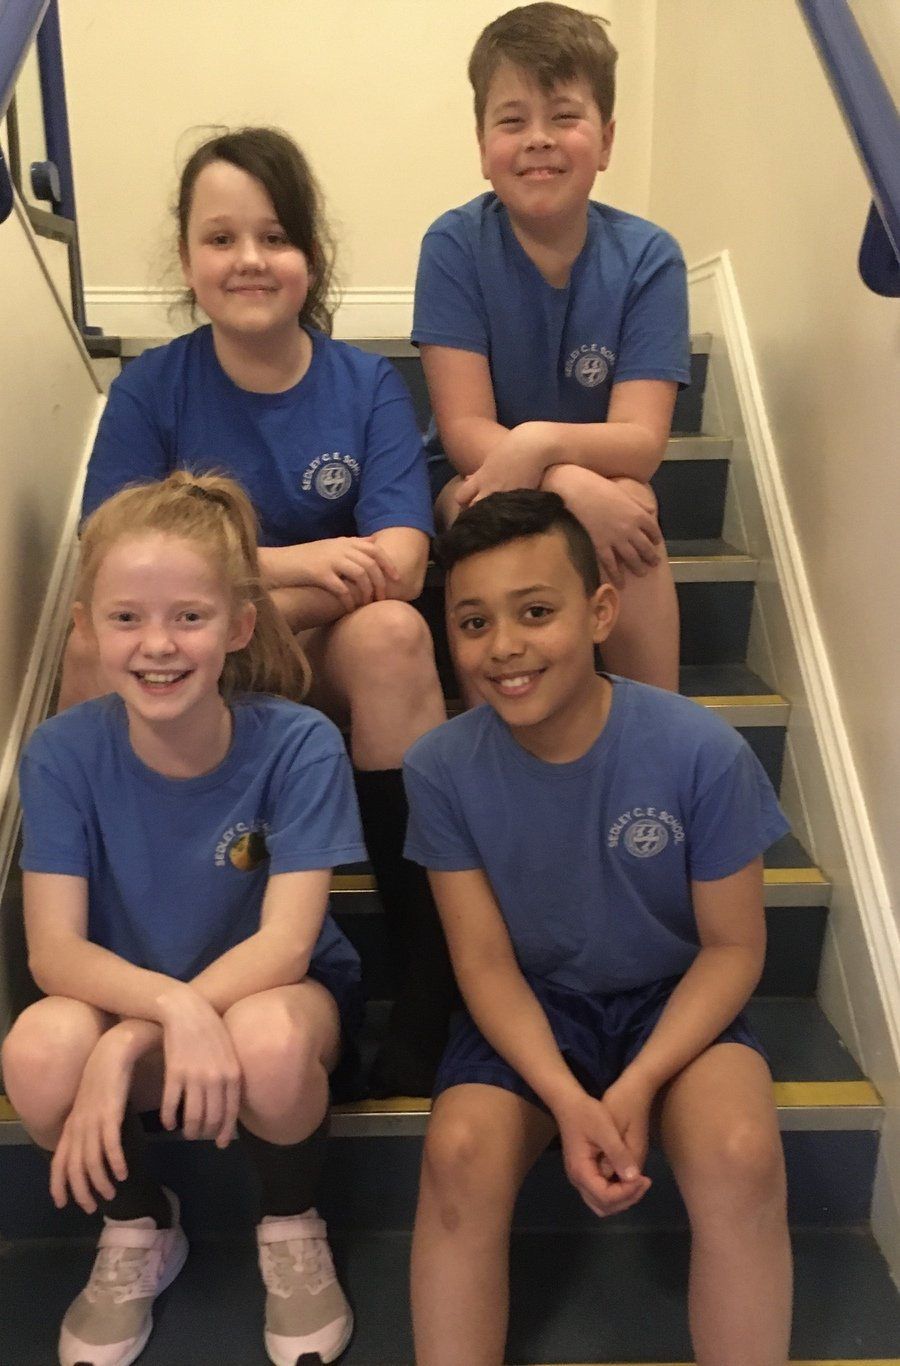 The House Team Captain are: Libby for Water, Ronnie for Earth, Ryan for Fire and Daisy for Lightening.